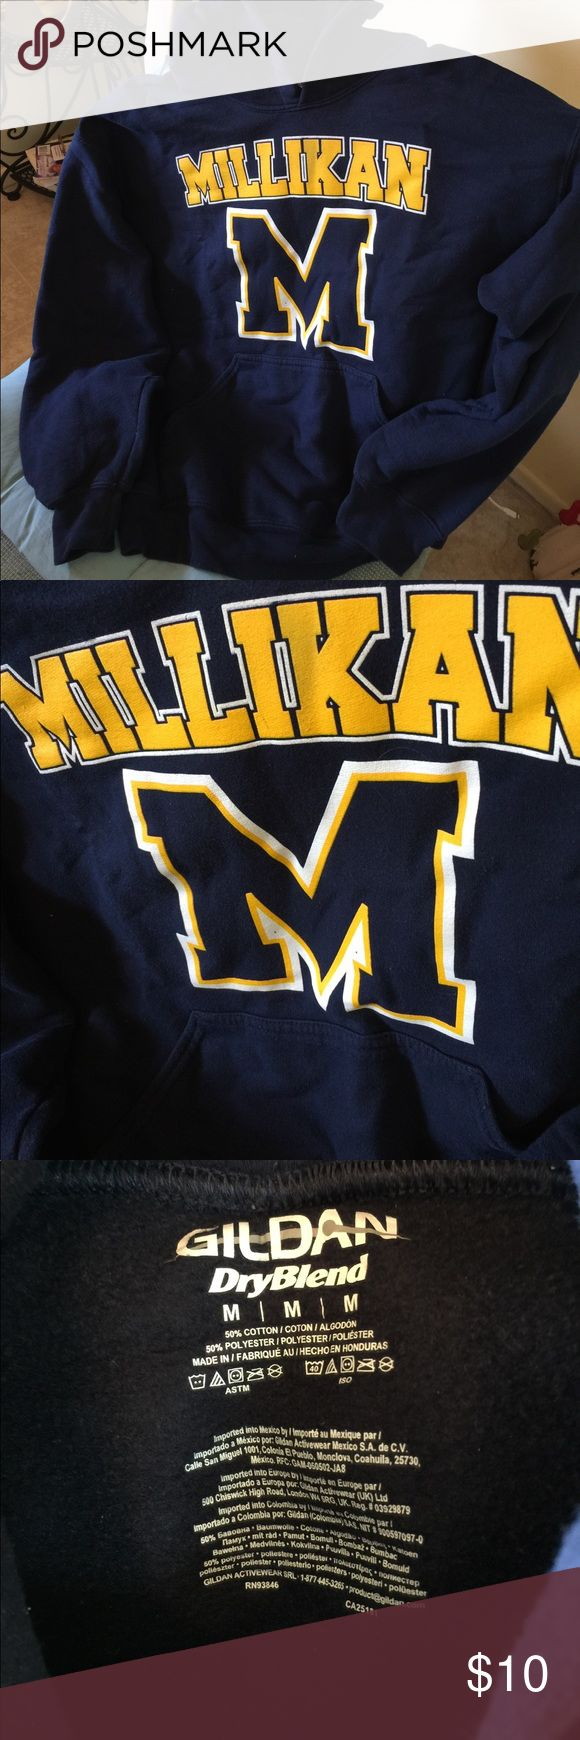 Millikan High School Women's Hooded Sweatshirt Top This is a perfect sweatshirt for your high school student who goes to this great school in Long Beach. My granddaughter outgrew and it is in perfect seldom worn condition. The reason I am selling cheap it is missing hood string which is easy to fix. Get this good deal!! Save money! Gilbrand Tops Sweatshirts & Hoodies